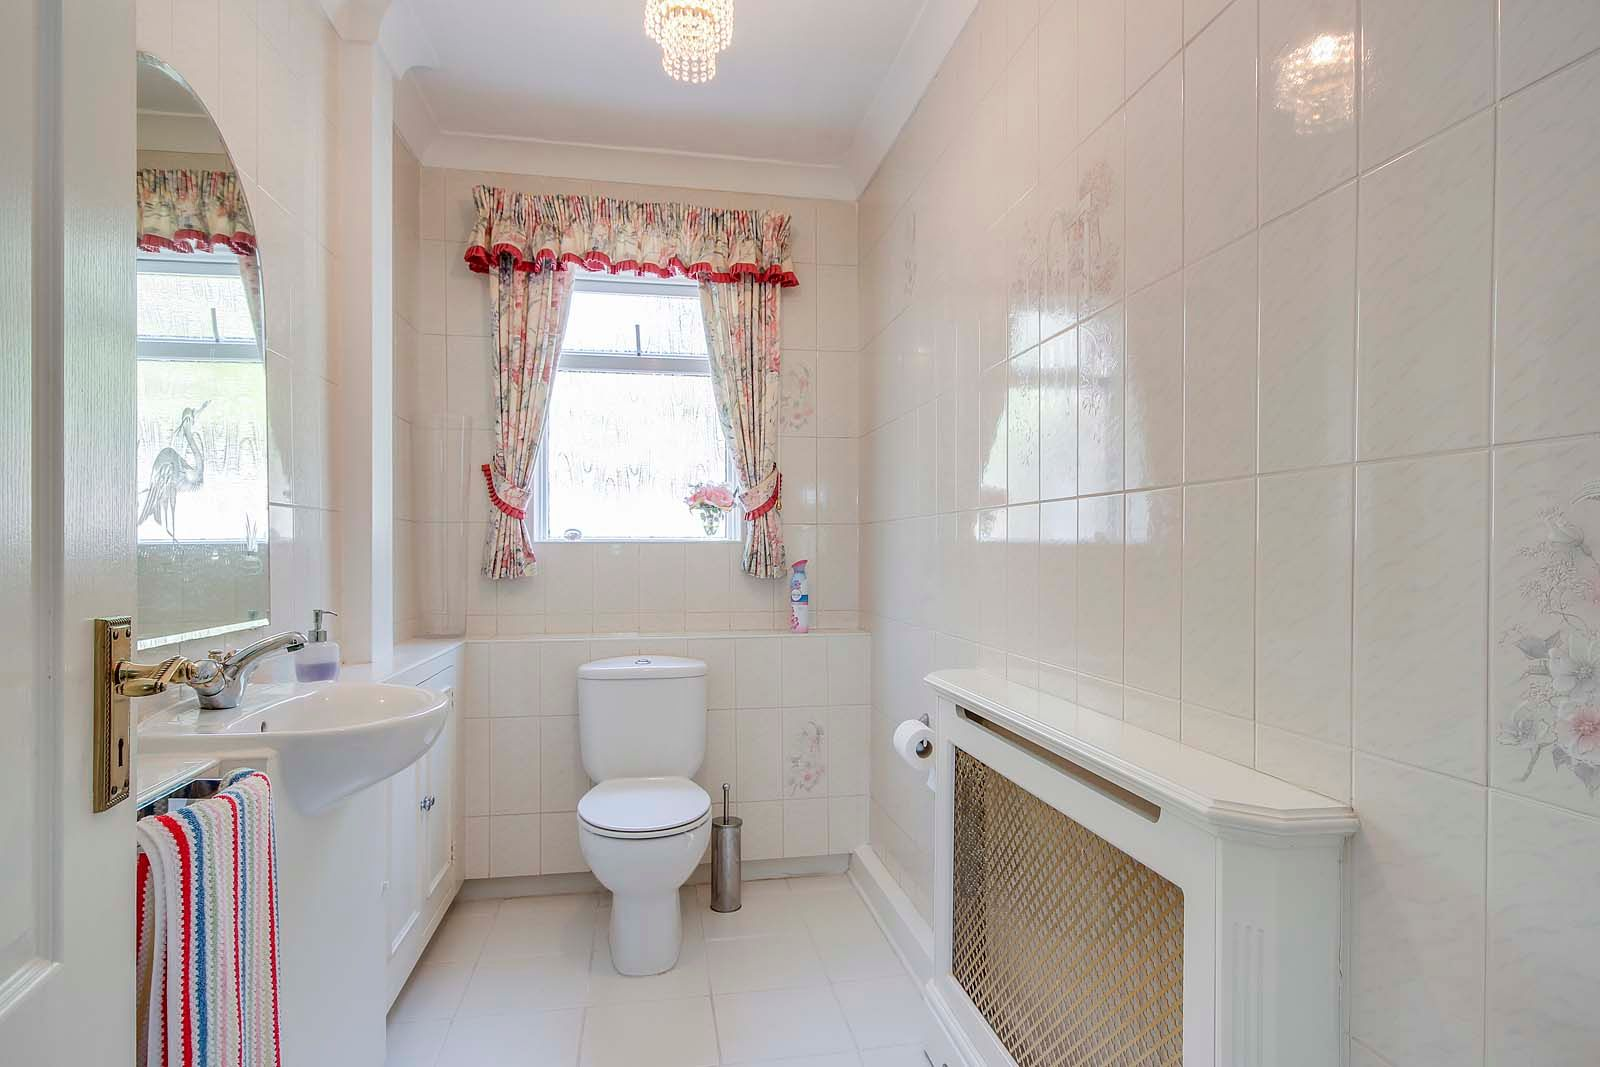 5 bed house for sale in The Ridings COMP 2019 14